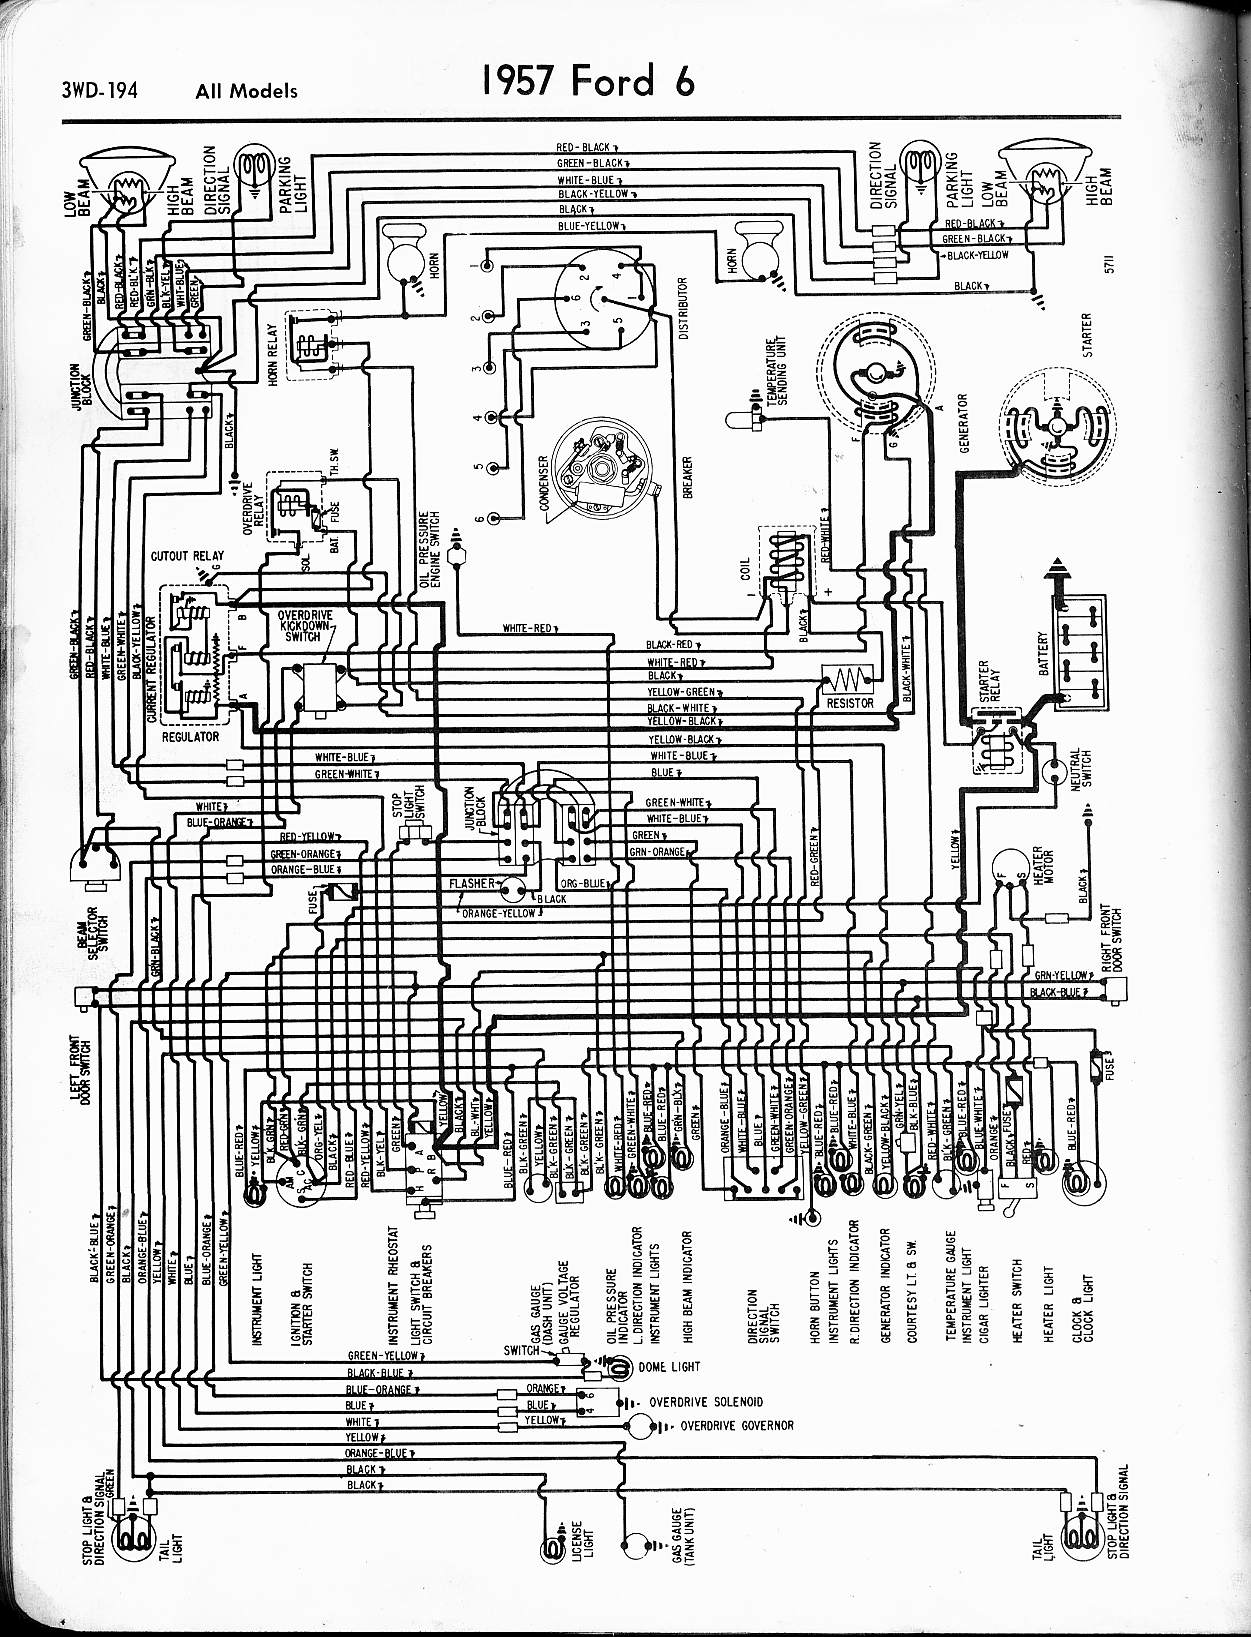 hight resolution of 1947 ford coupe wiring diagram wiring diagram1957 ford wiring harness wiring diagram57 65 ford wiring diagrams